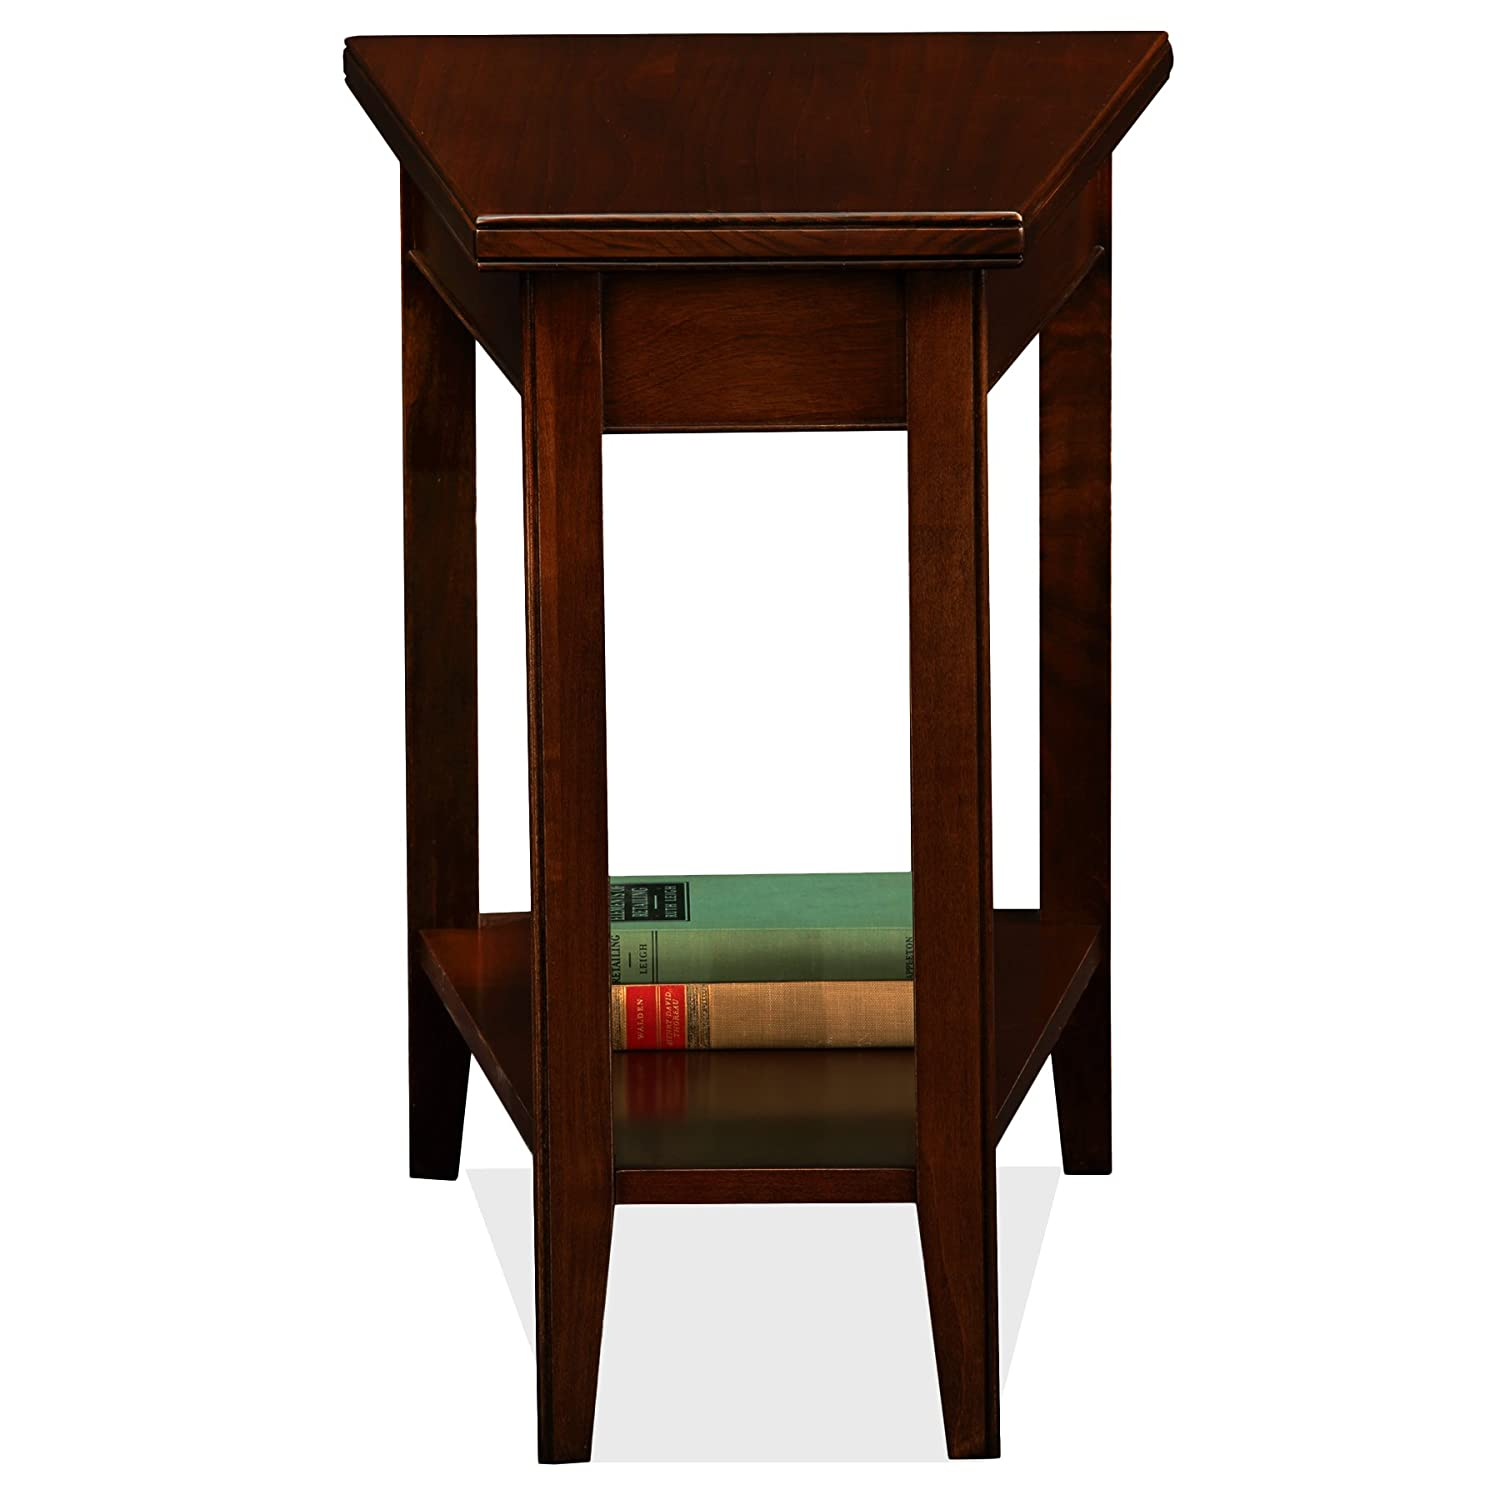 sc 1 st  Amazon.com & Amazon.com: Leick Laurent Recliner Wedge End Table: Kitchen \u0026 Dining islam-shia.org